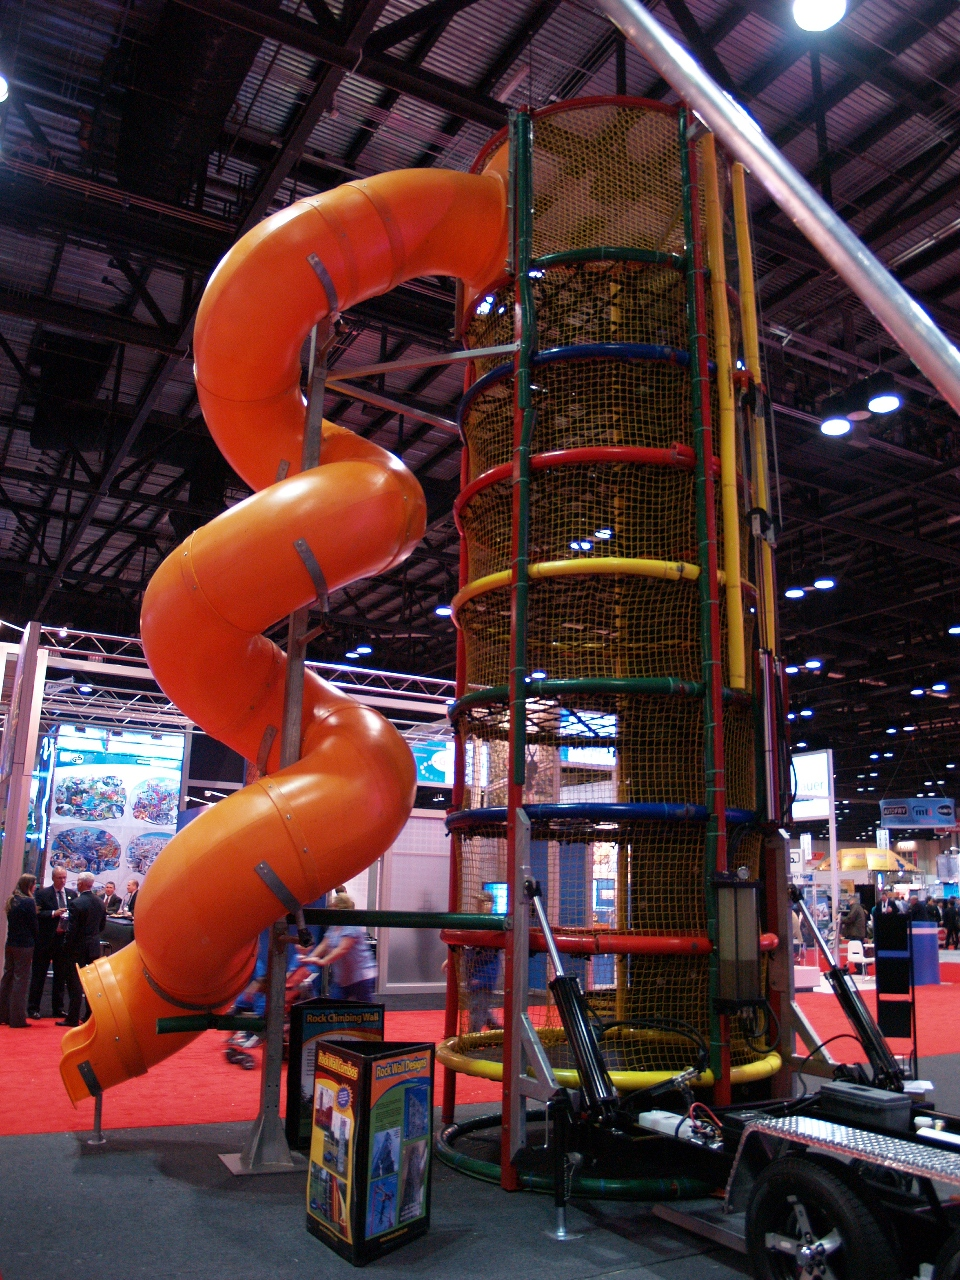 IAAPA 2014 annual show outing